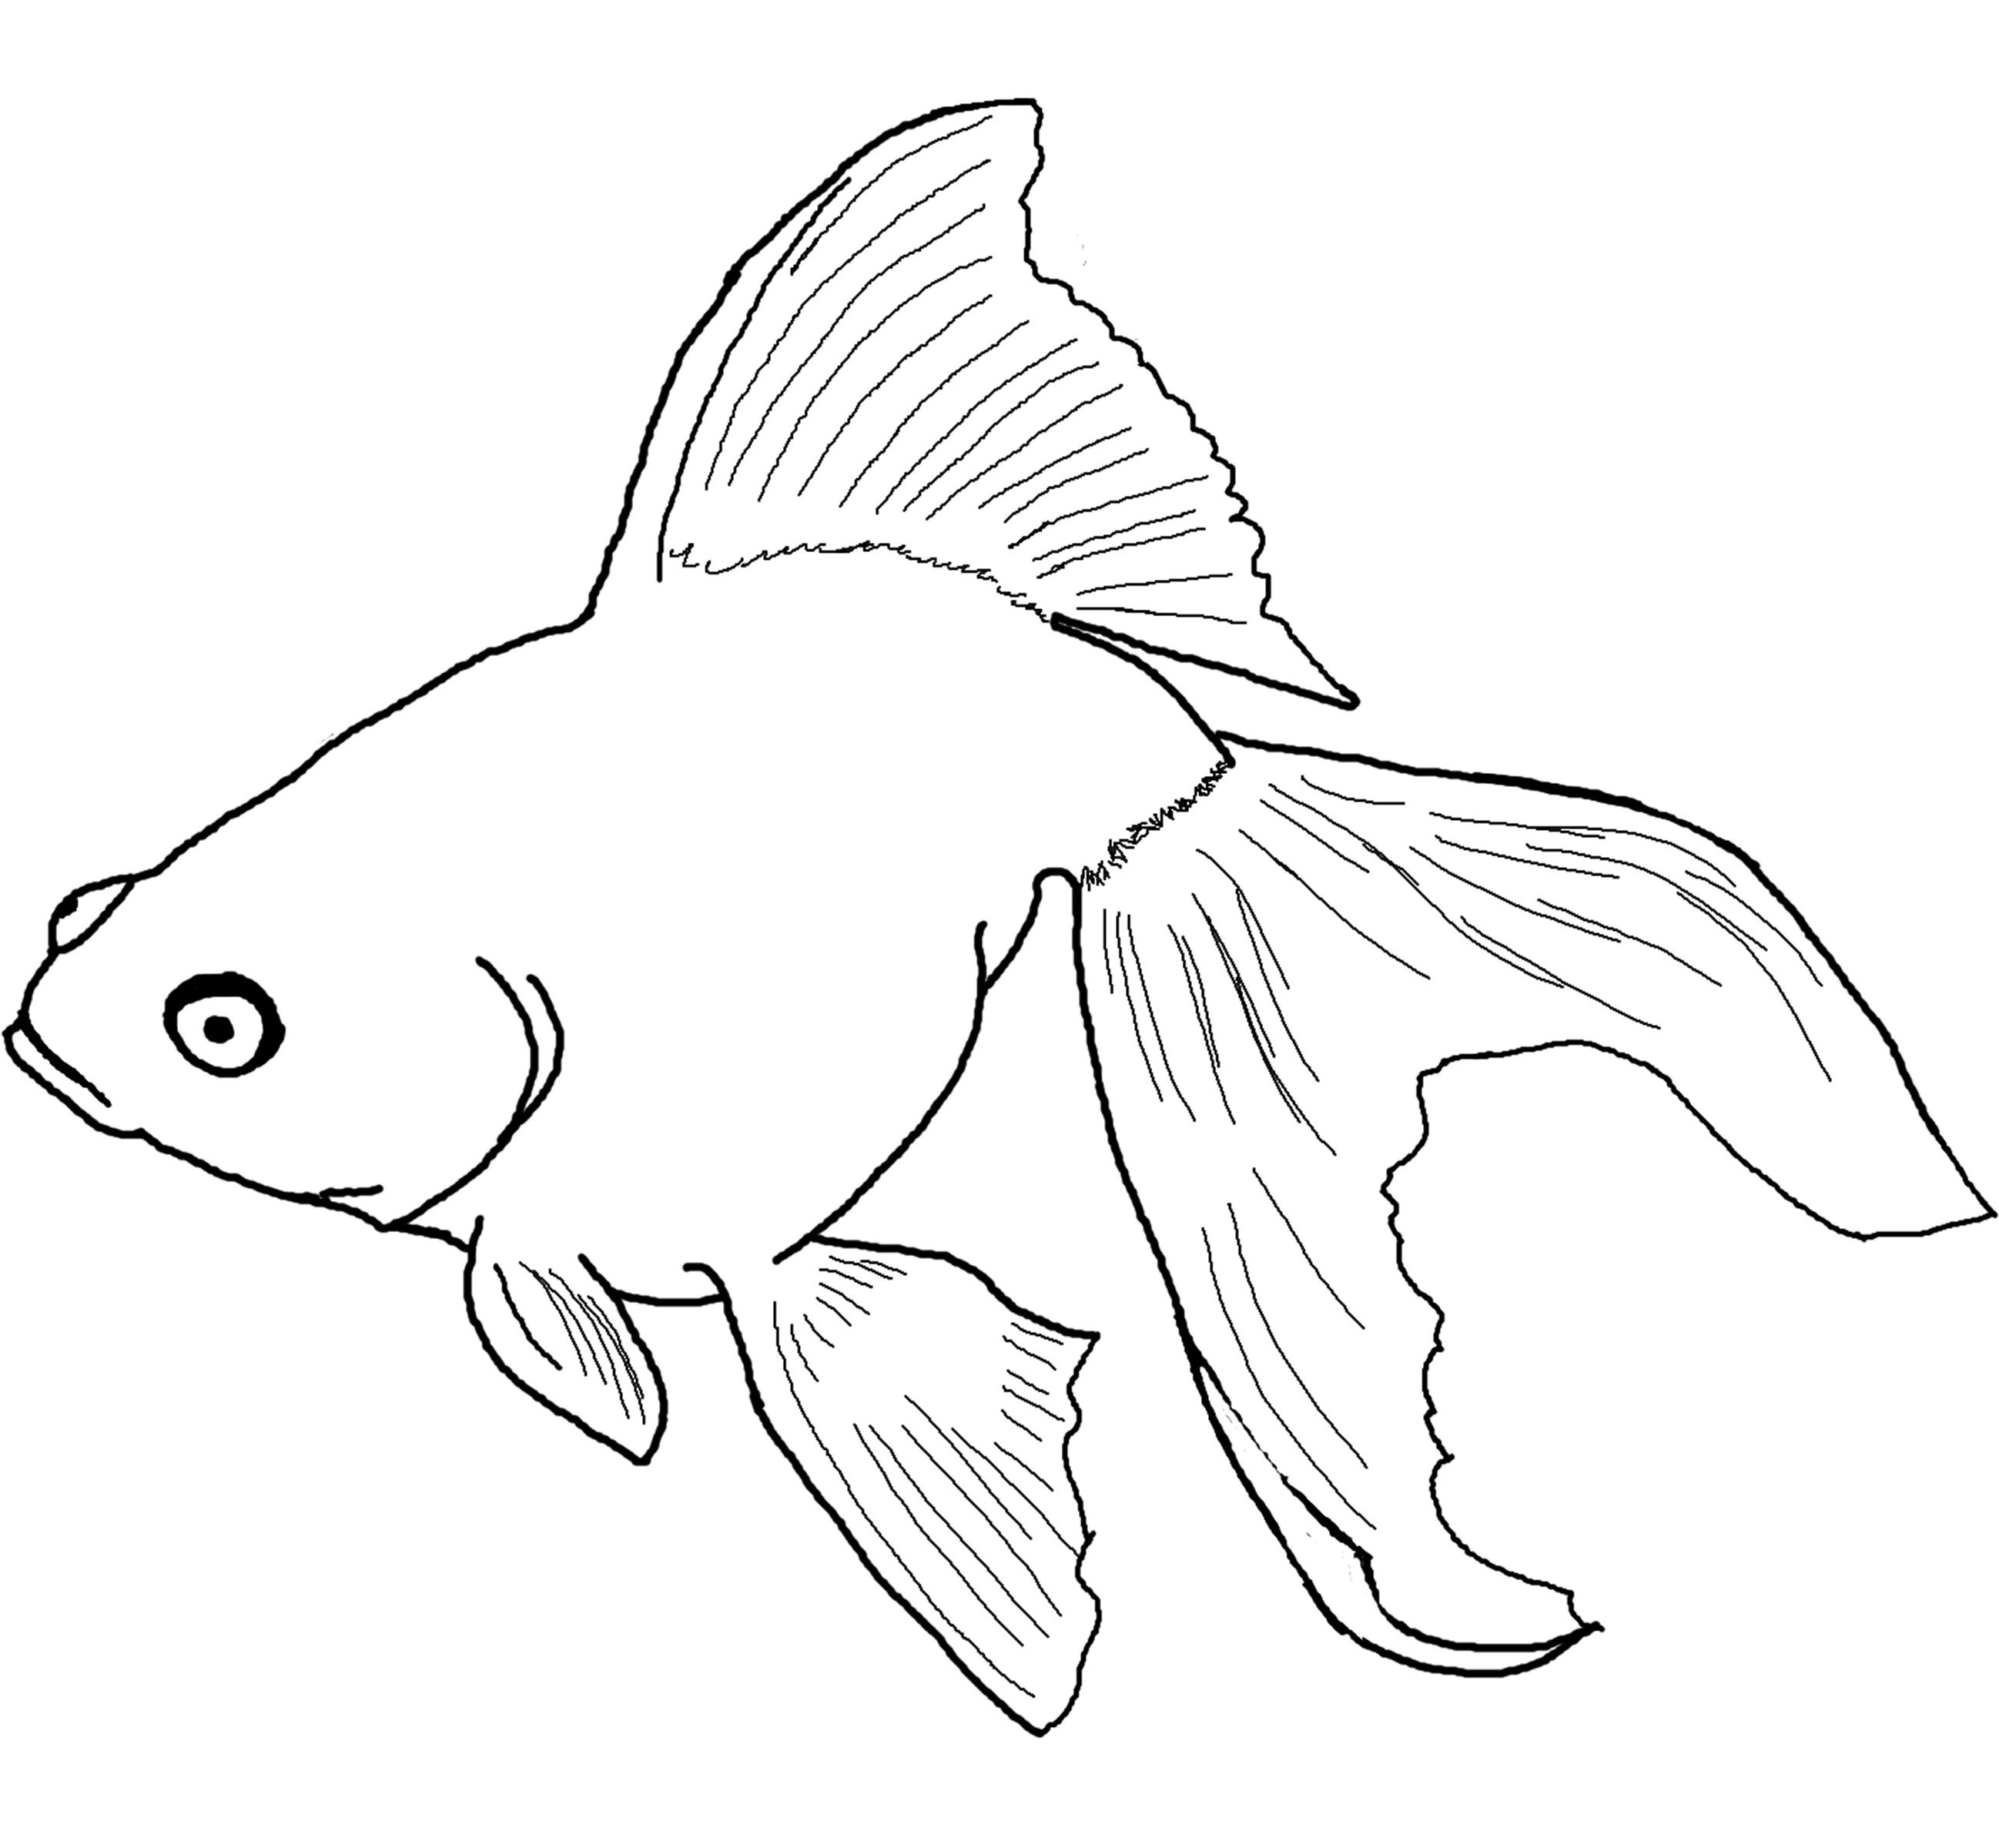 2596x2400 Outline Drawings Of Fish Group 75